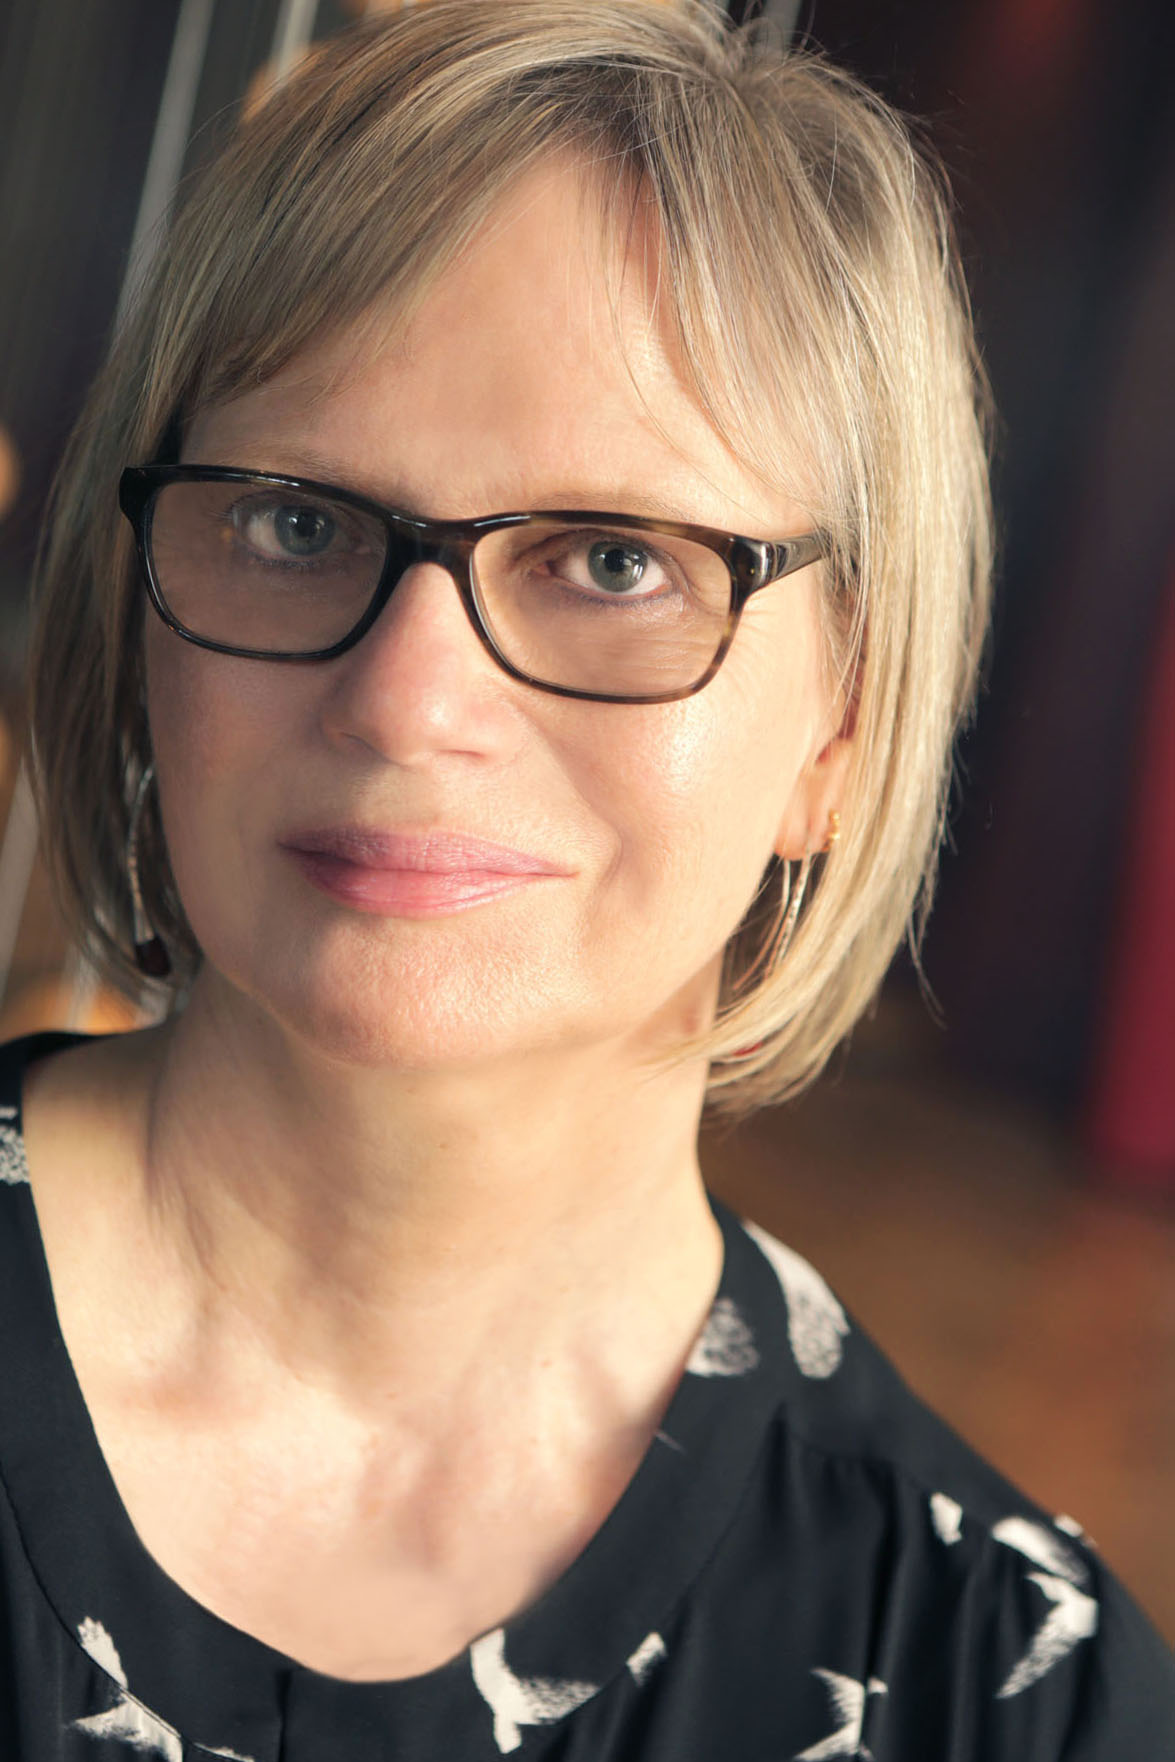 A photograph of Gaele Sobott, a blond haired woman wearing dark-rimmed glasses in modern style.